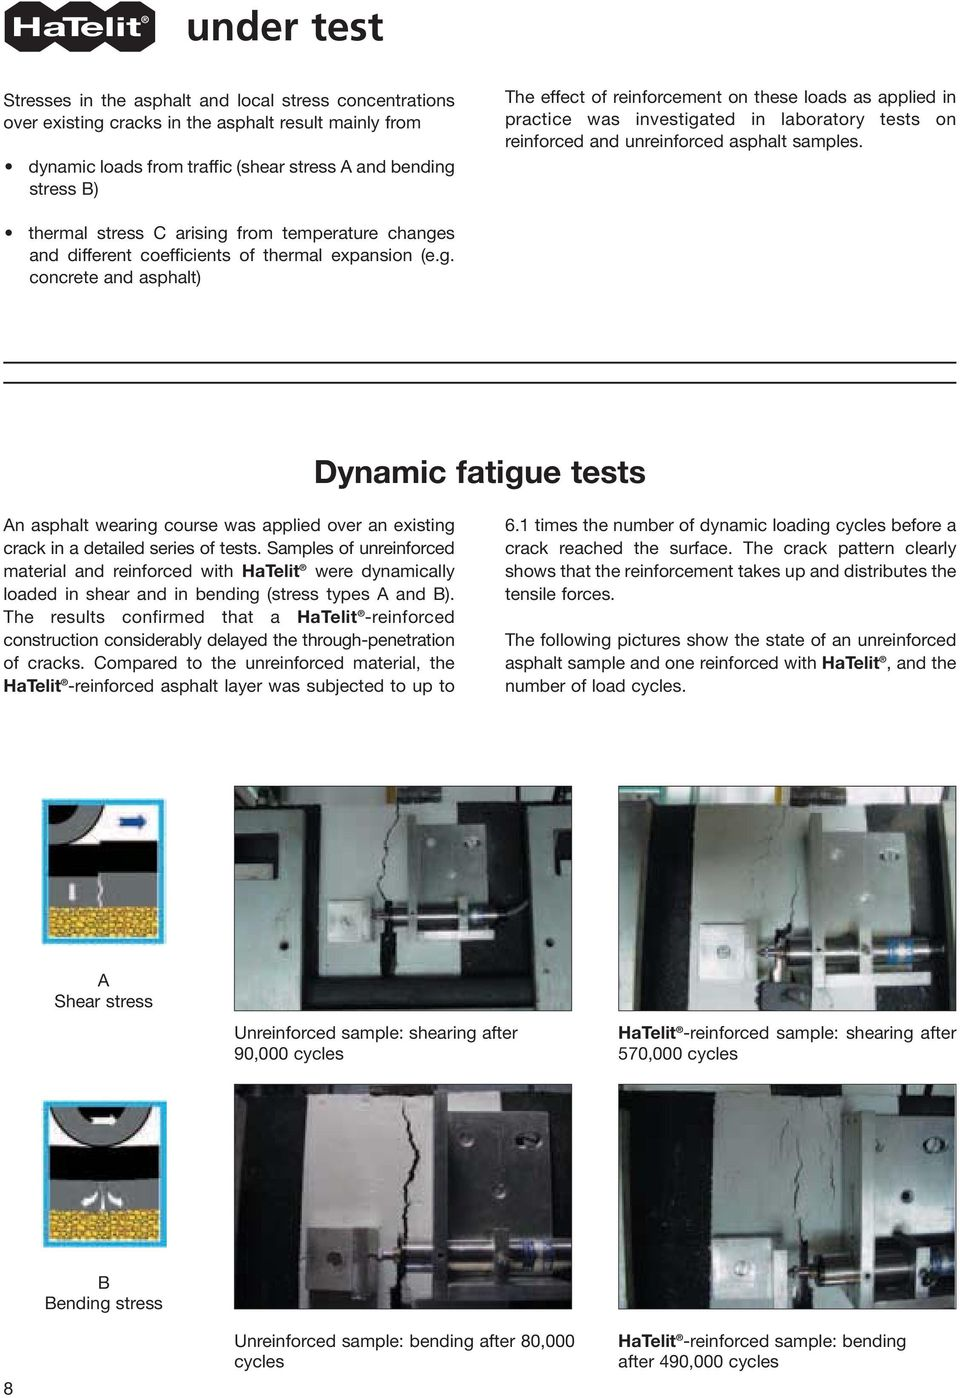 thermal stress C arising from temperature changes and different coefficients of thermal expansion (e.g. concrete and asphalt) Dynamic fatigue tests An asphalt wearing course was applied over an existing crack in a detailed series of tests.